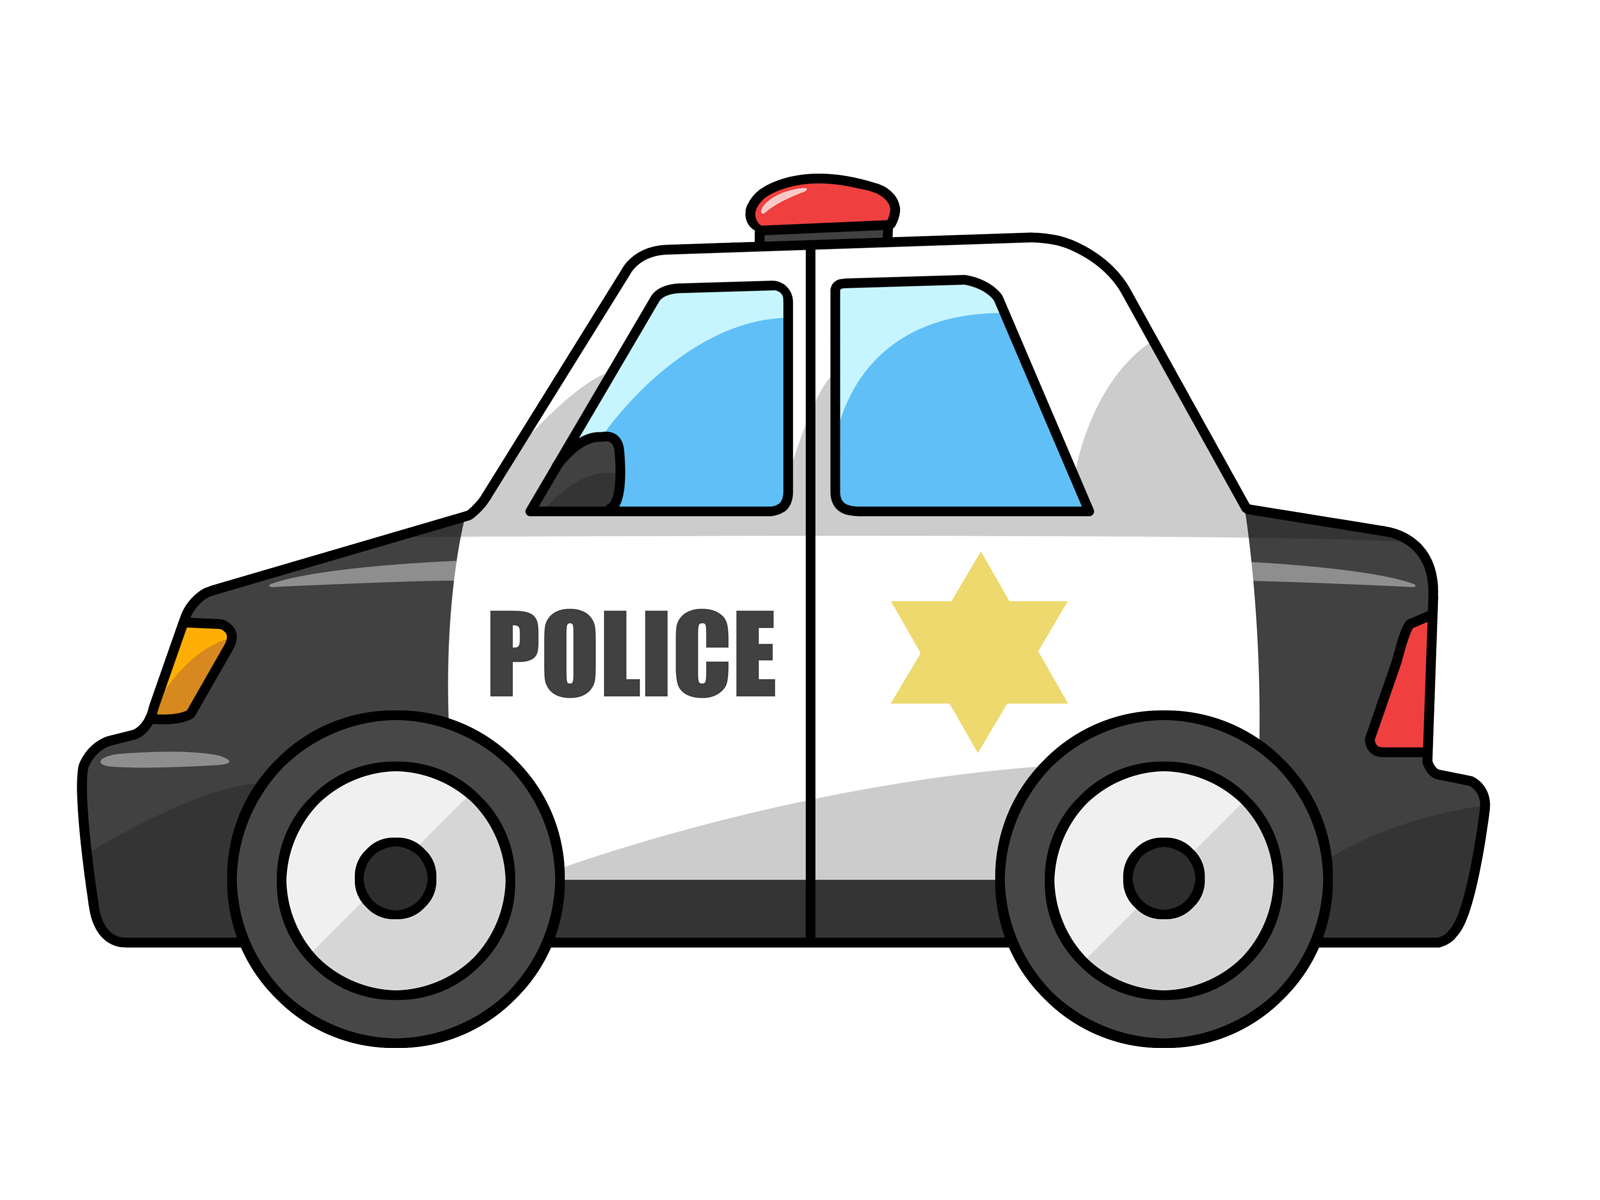 Free to Use u0026amp; Public Domain Police Car Clip Art - ClipArt Best - ClipArt Best | Para hacer! | Pinterest | Creative, Police officer and Clip art